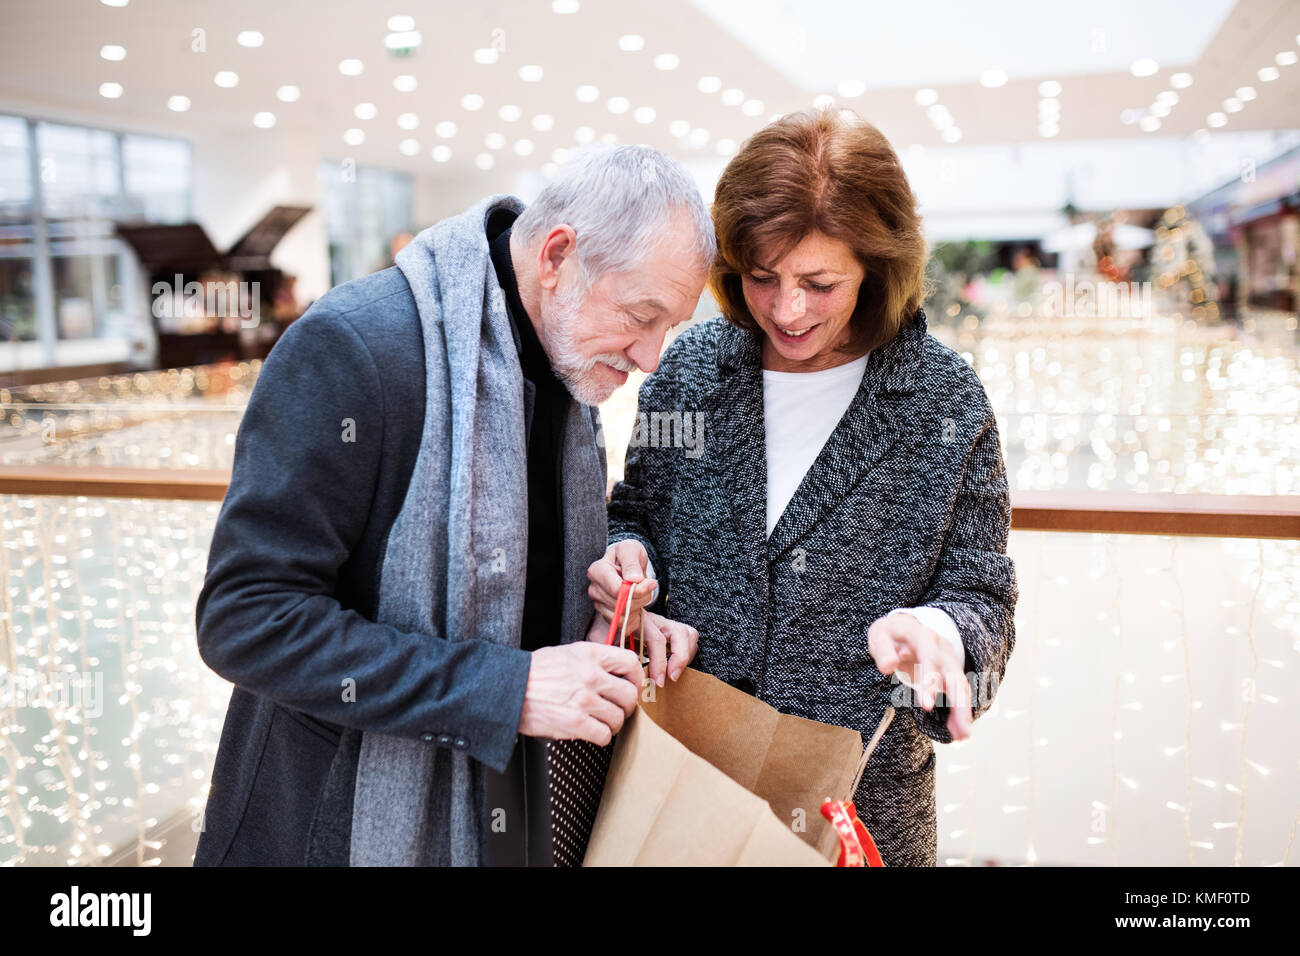 Coppia senior facendo shopping di Natale. Immagini Stock